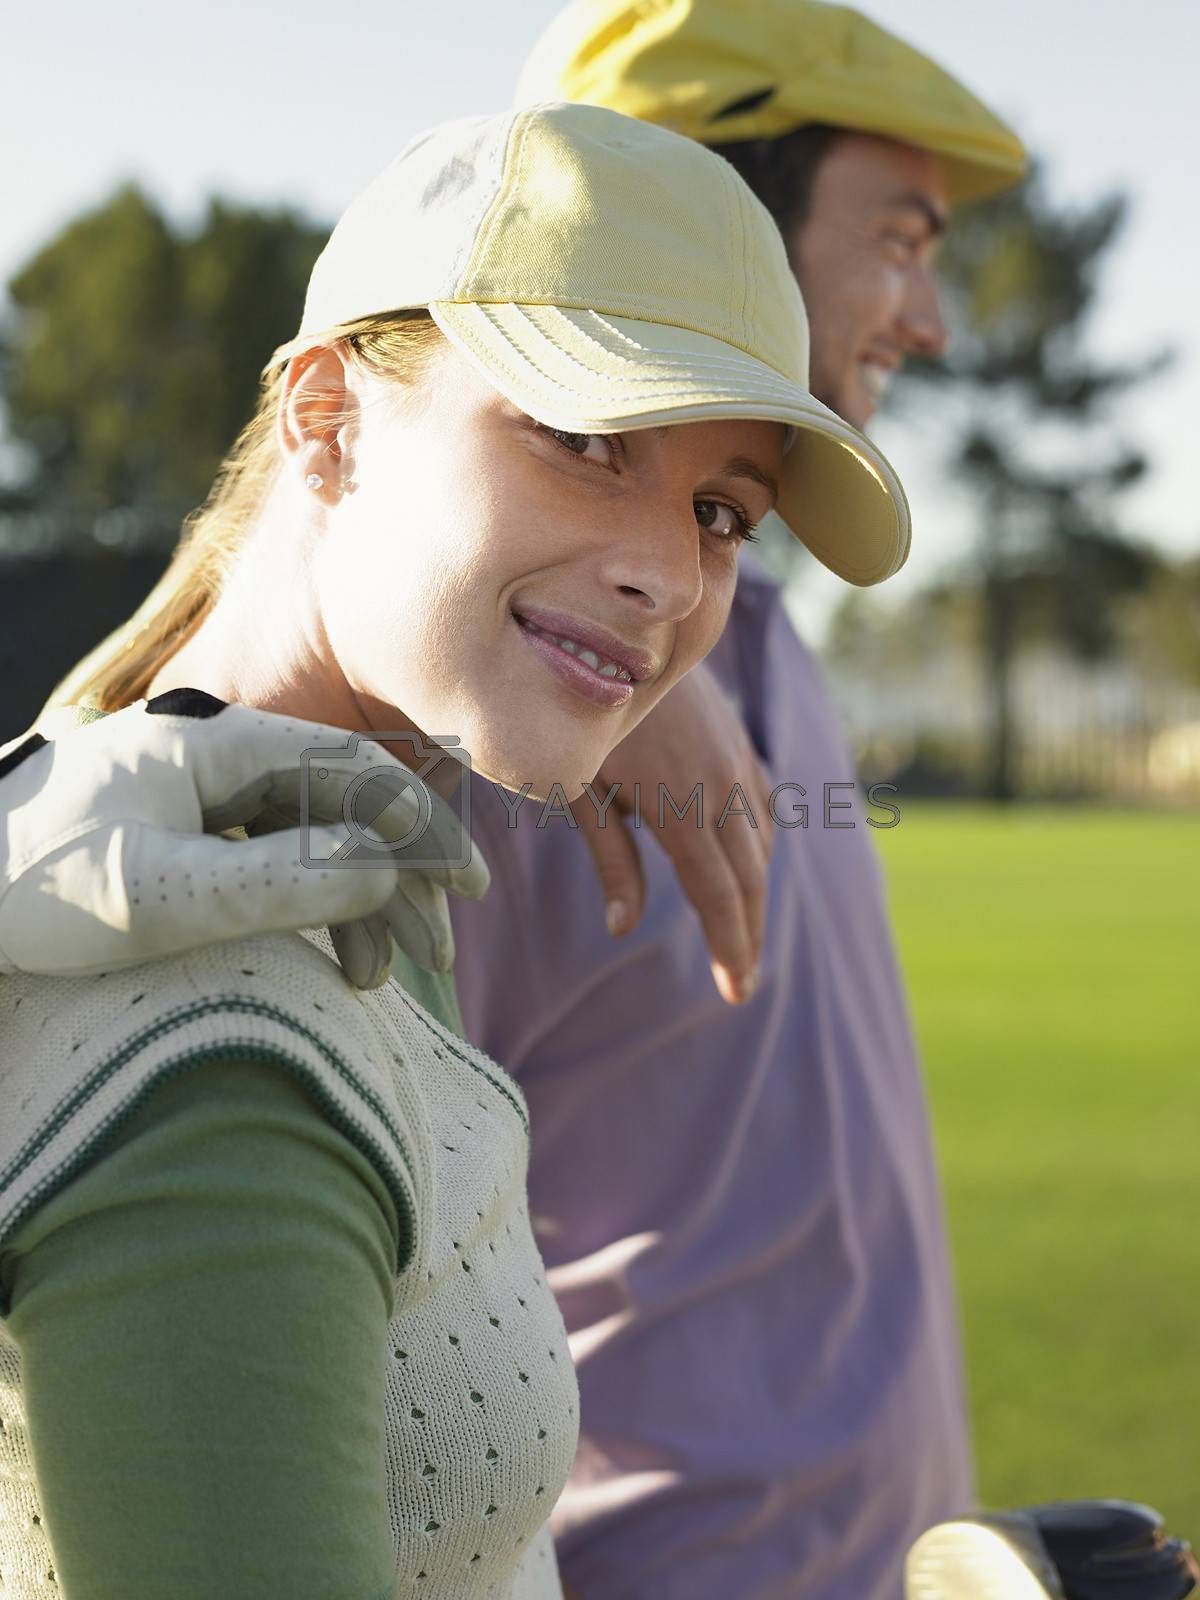 Female Golfer With Friends On Golf Course